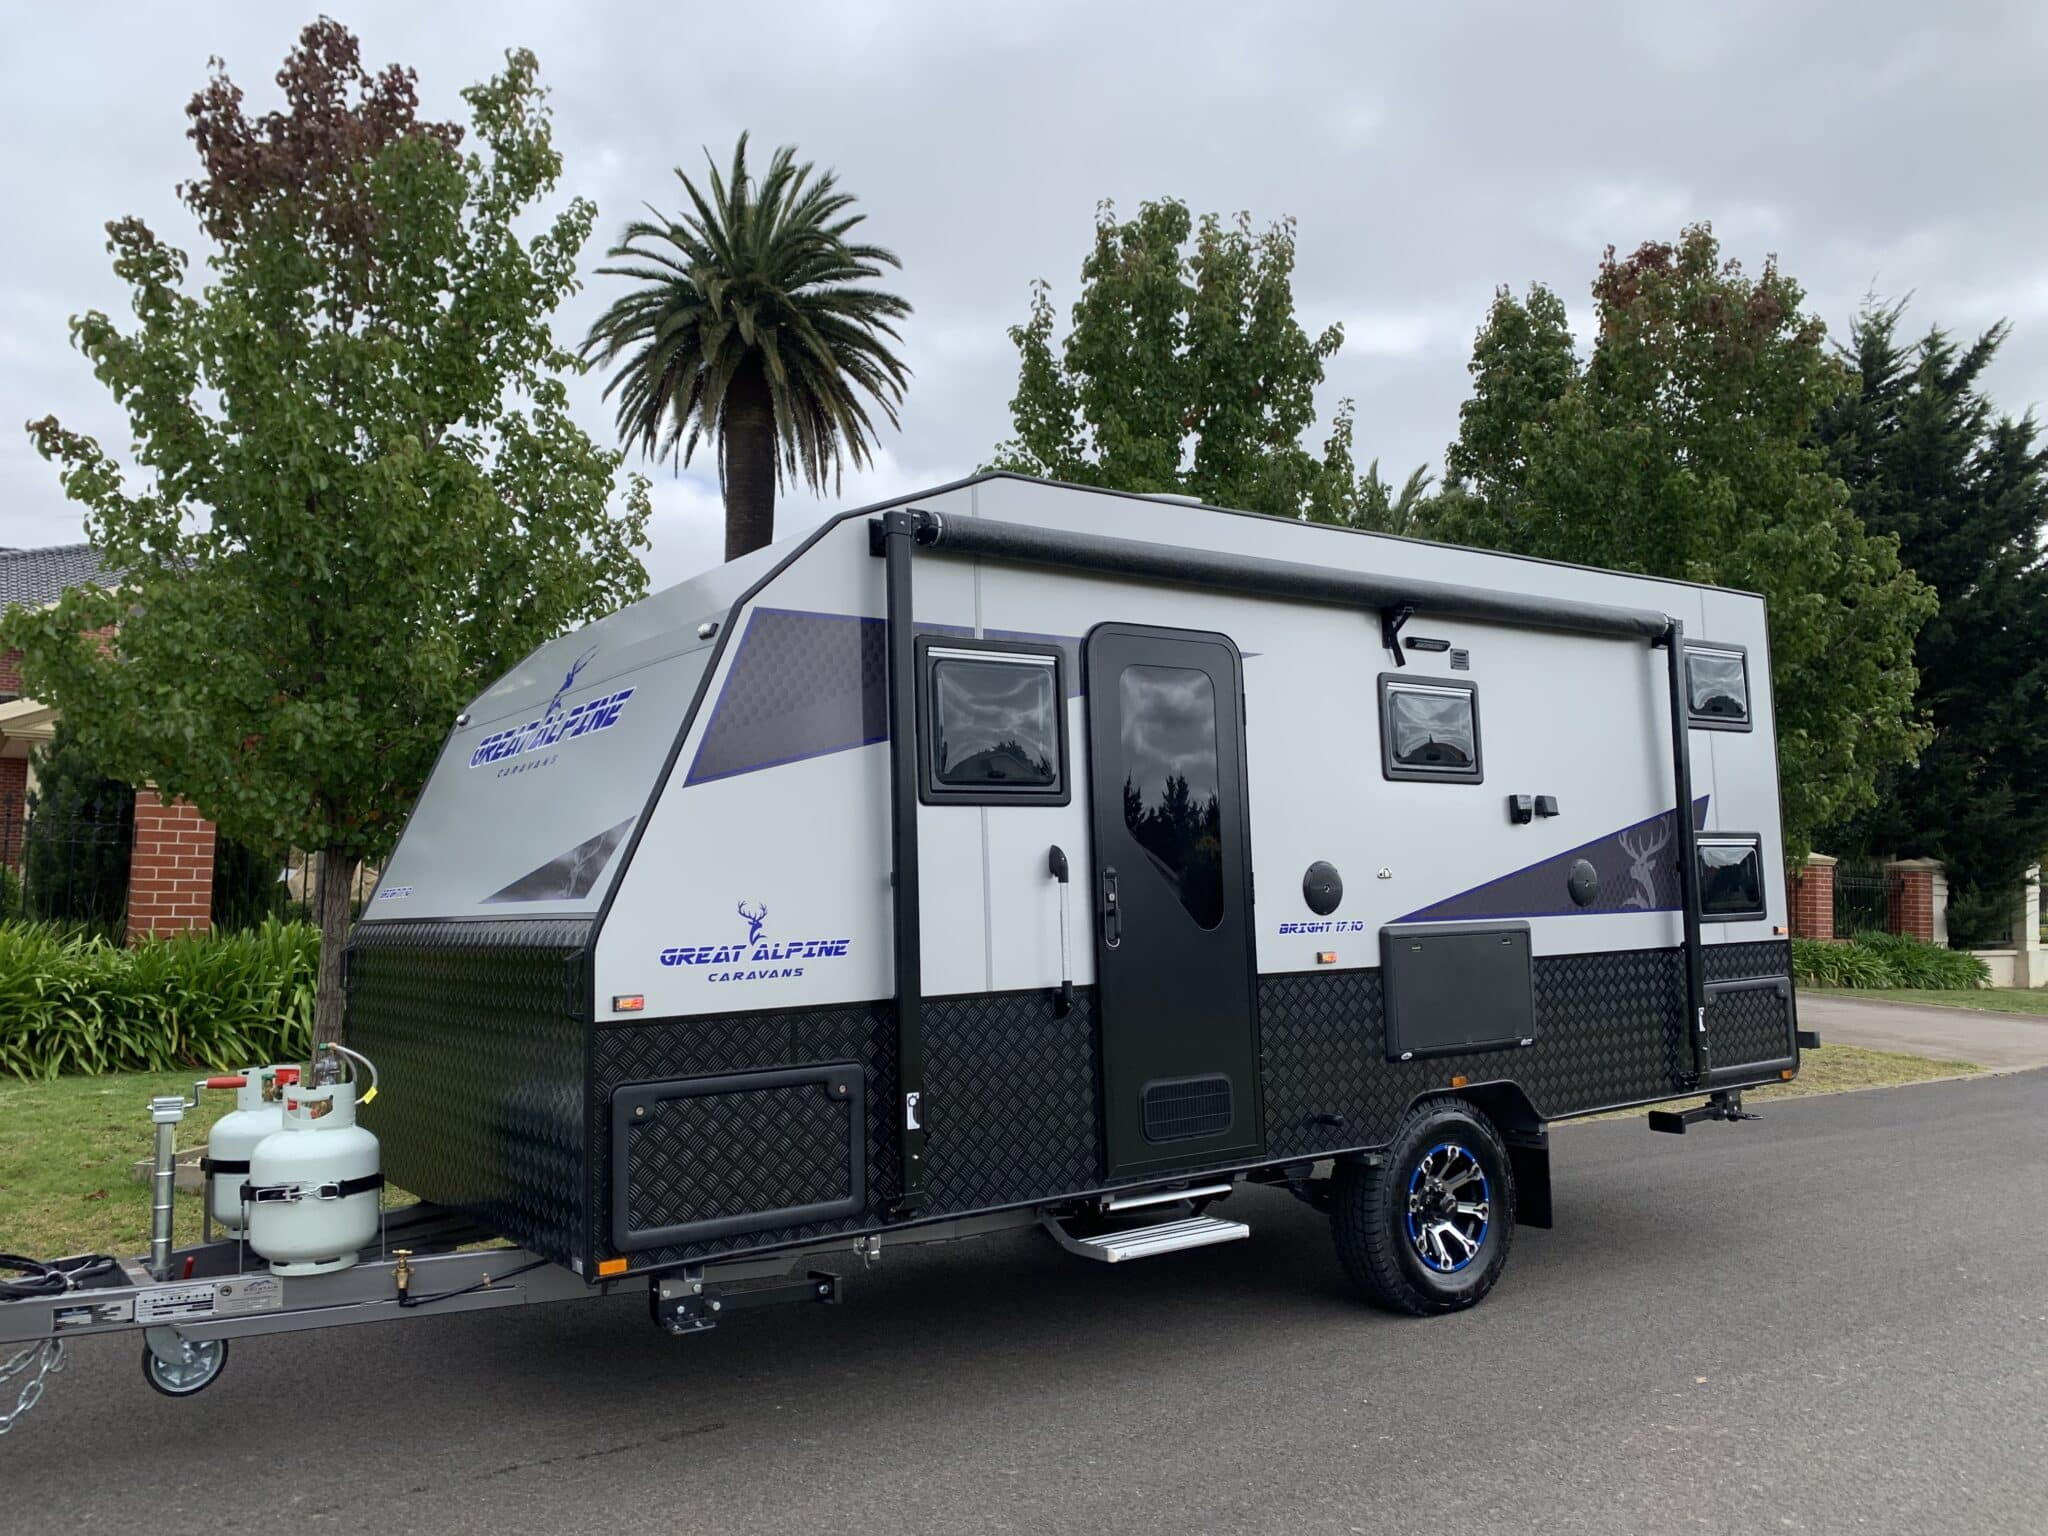 Great Alpine-Bright family bunk 17.10ft with full ensuite